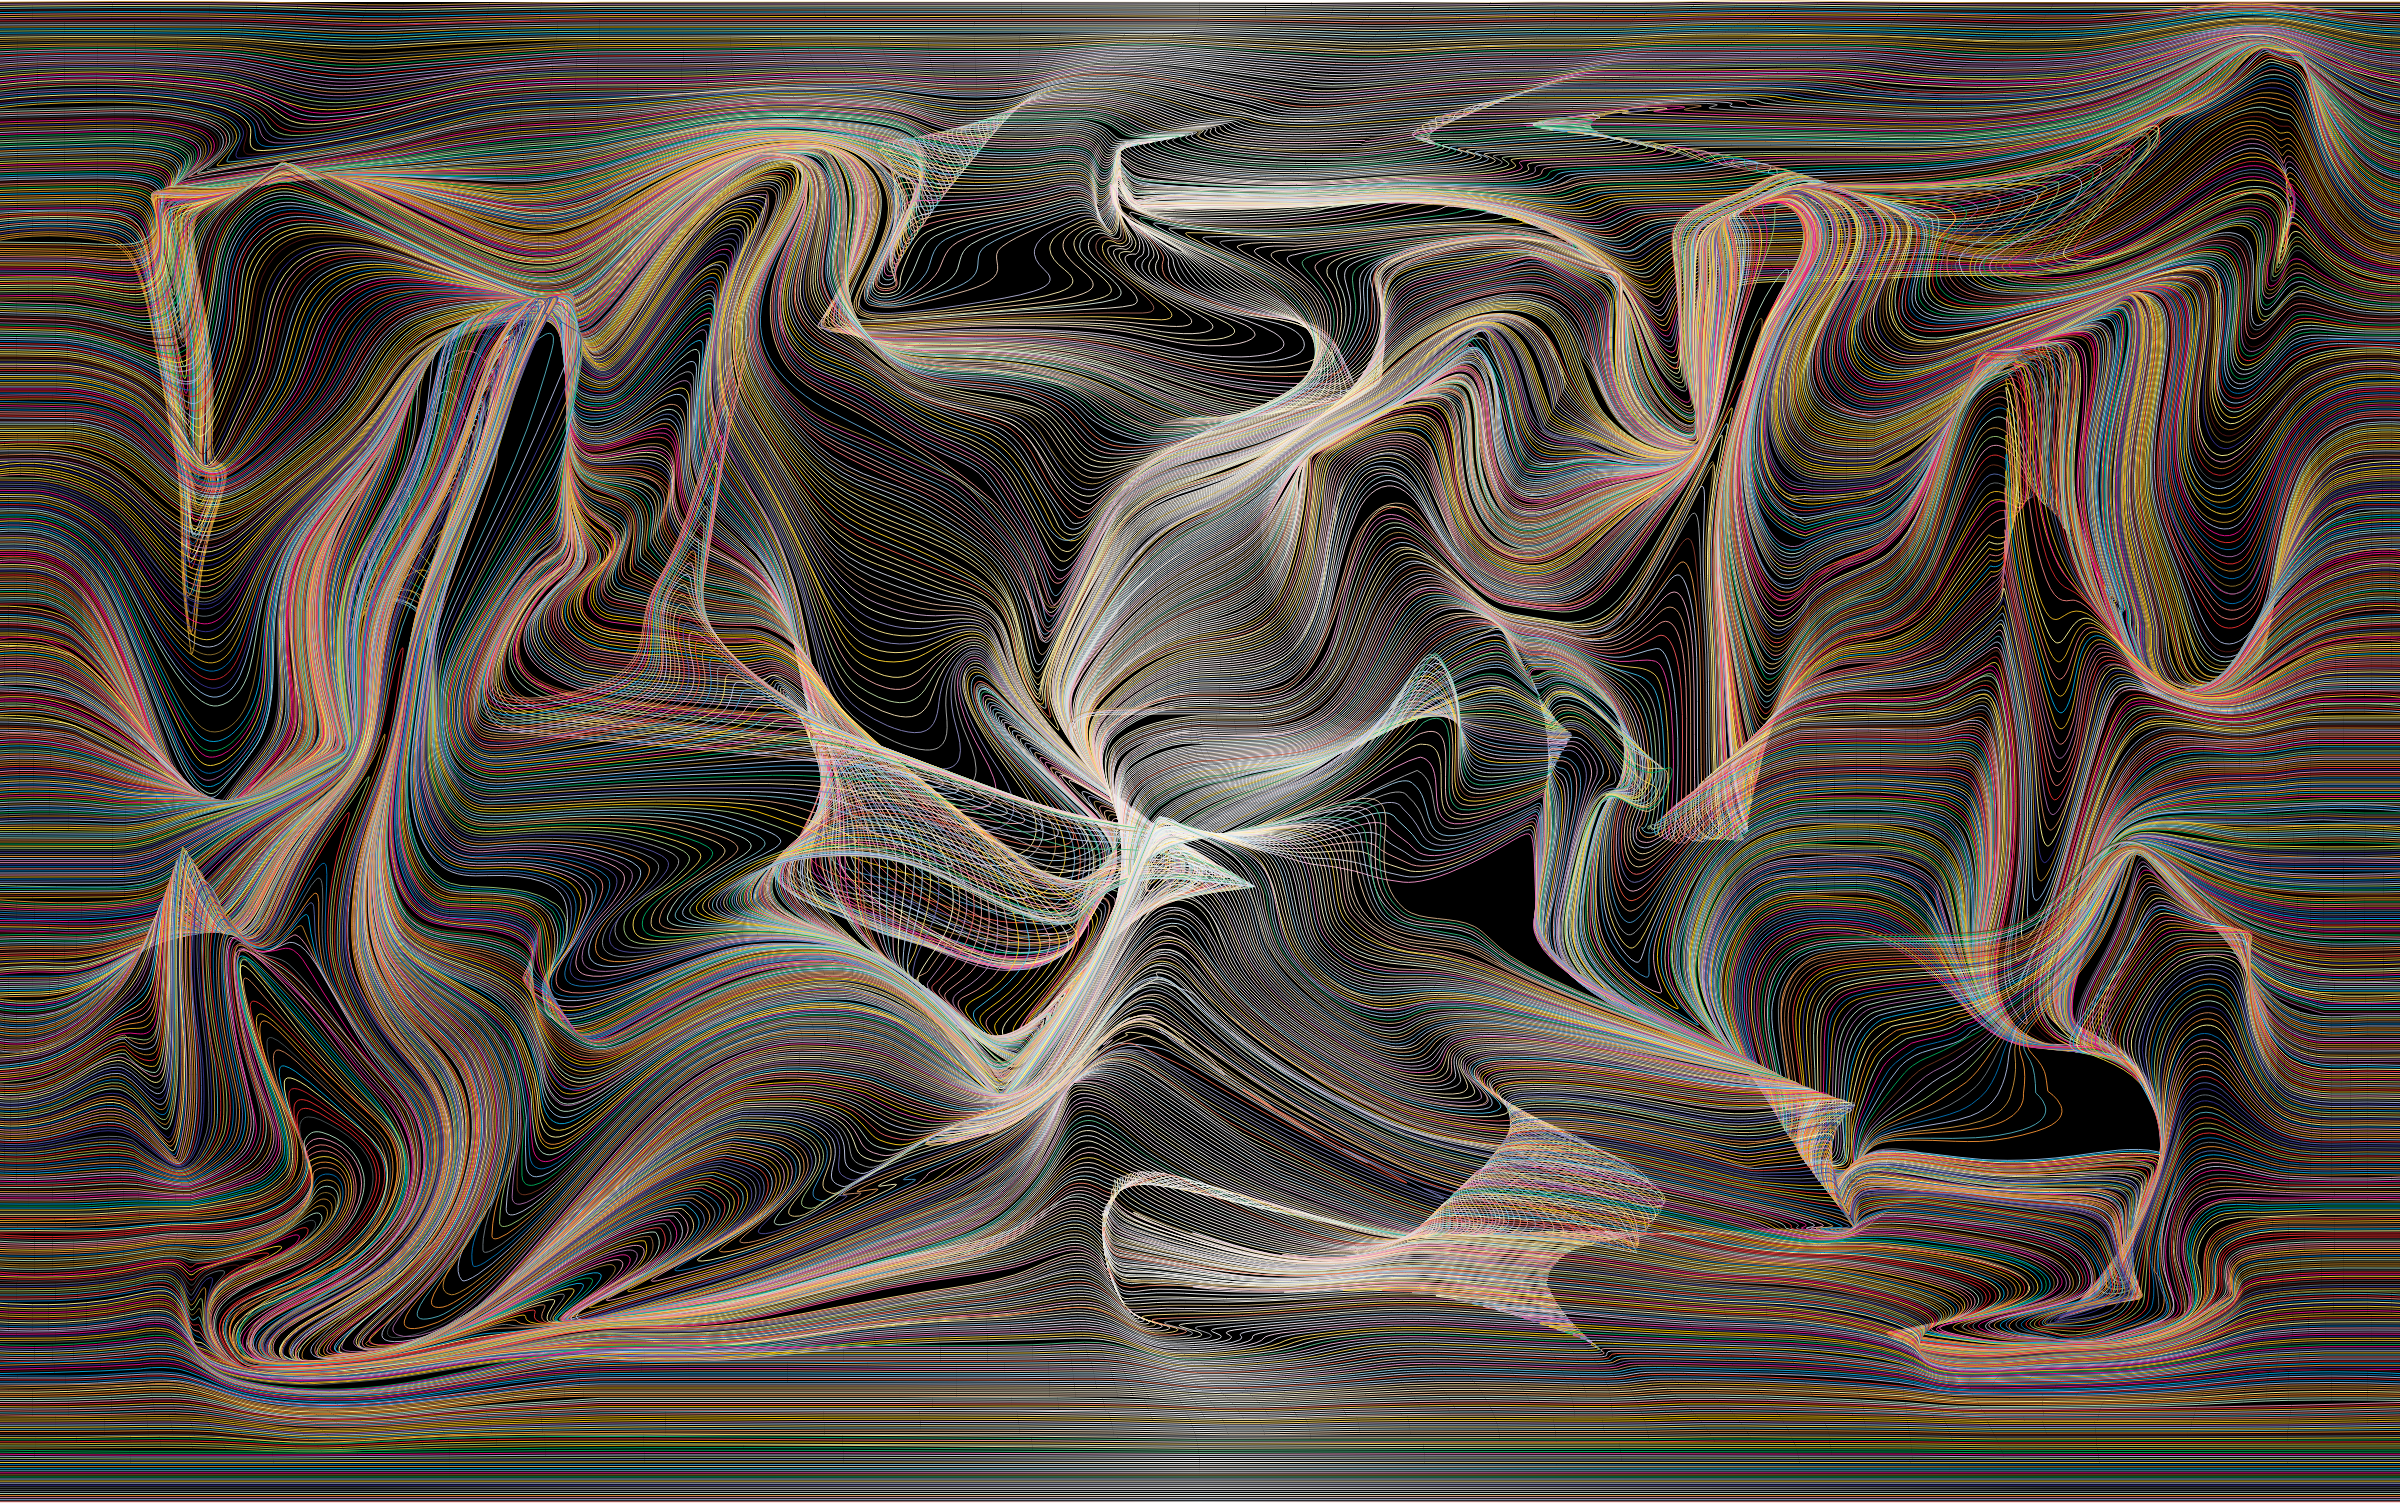 Prismatic Distorted Line Art Background 2 Variation 2 by GDJ